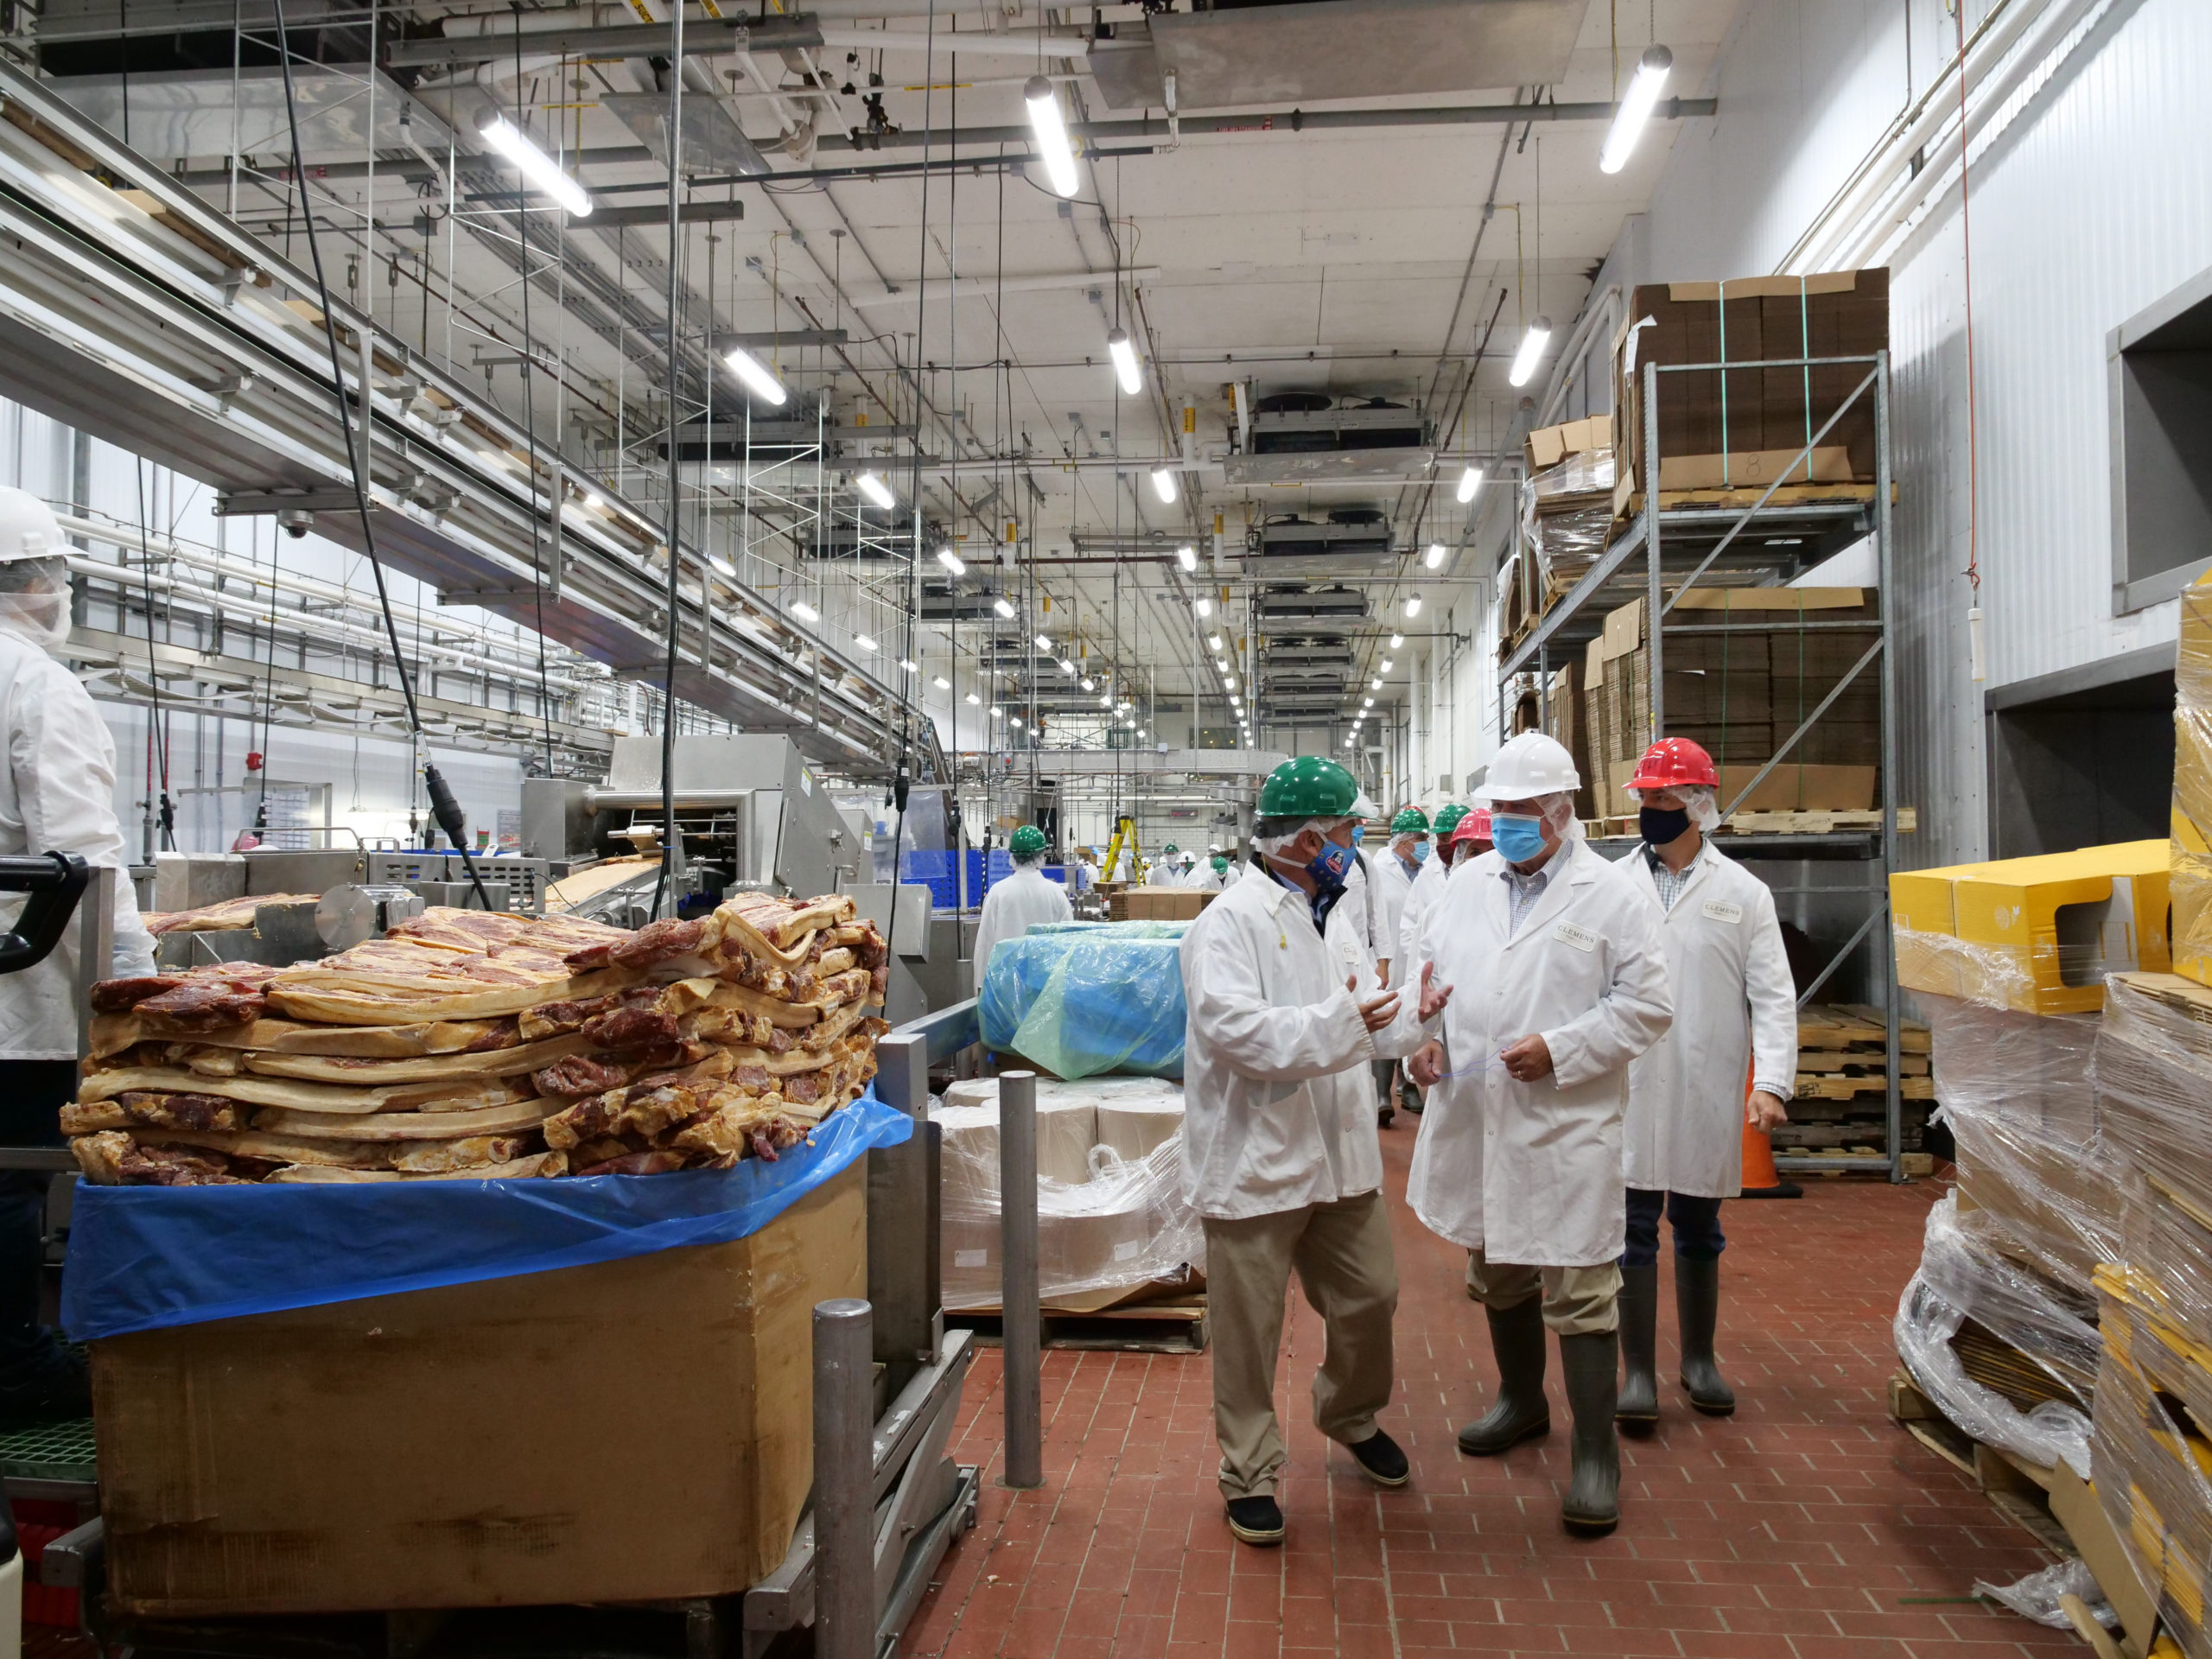 Investments and Opportunities for Input on Meat and Poultry Processing Infrastructure